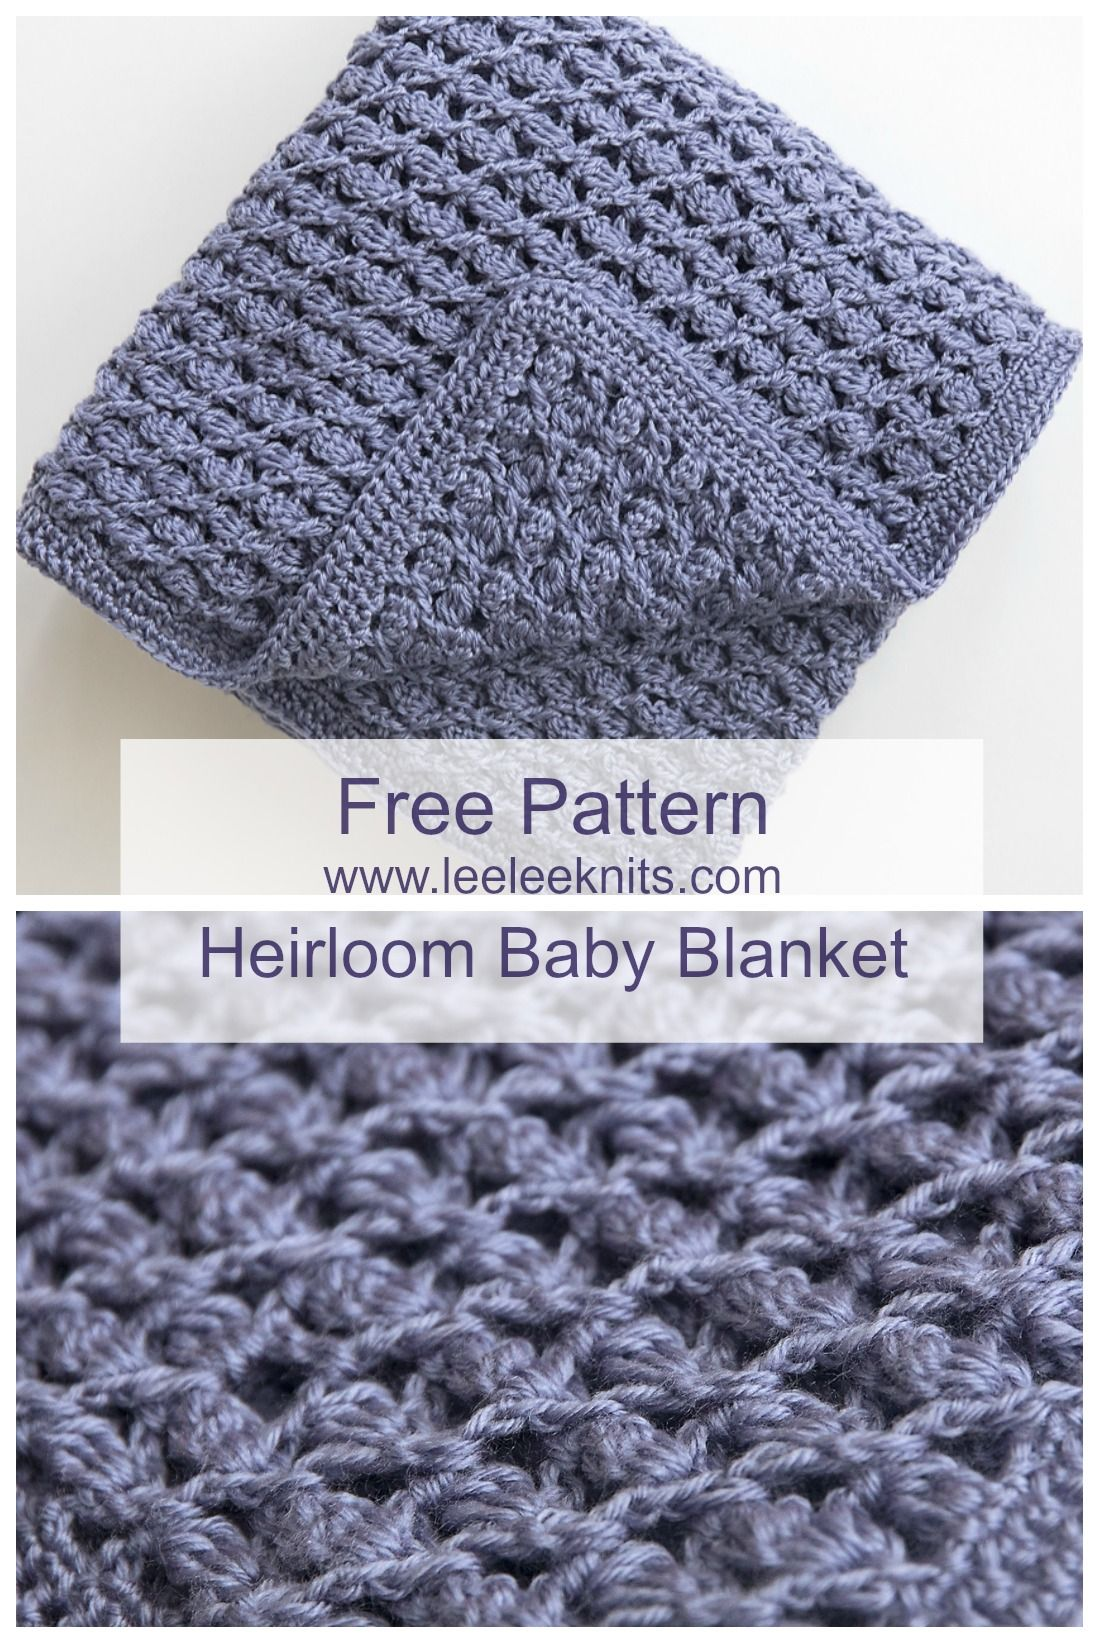 Free Heirloom Baby Blanket Crochet Pattern | knit and crochet ...